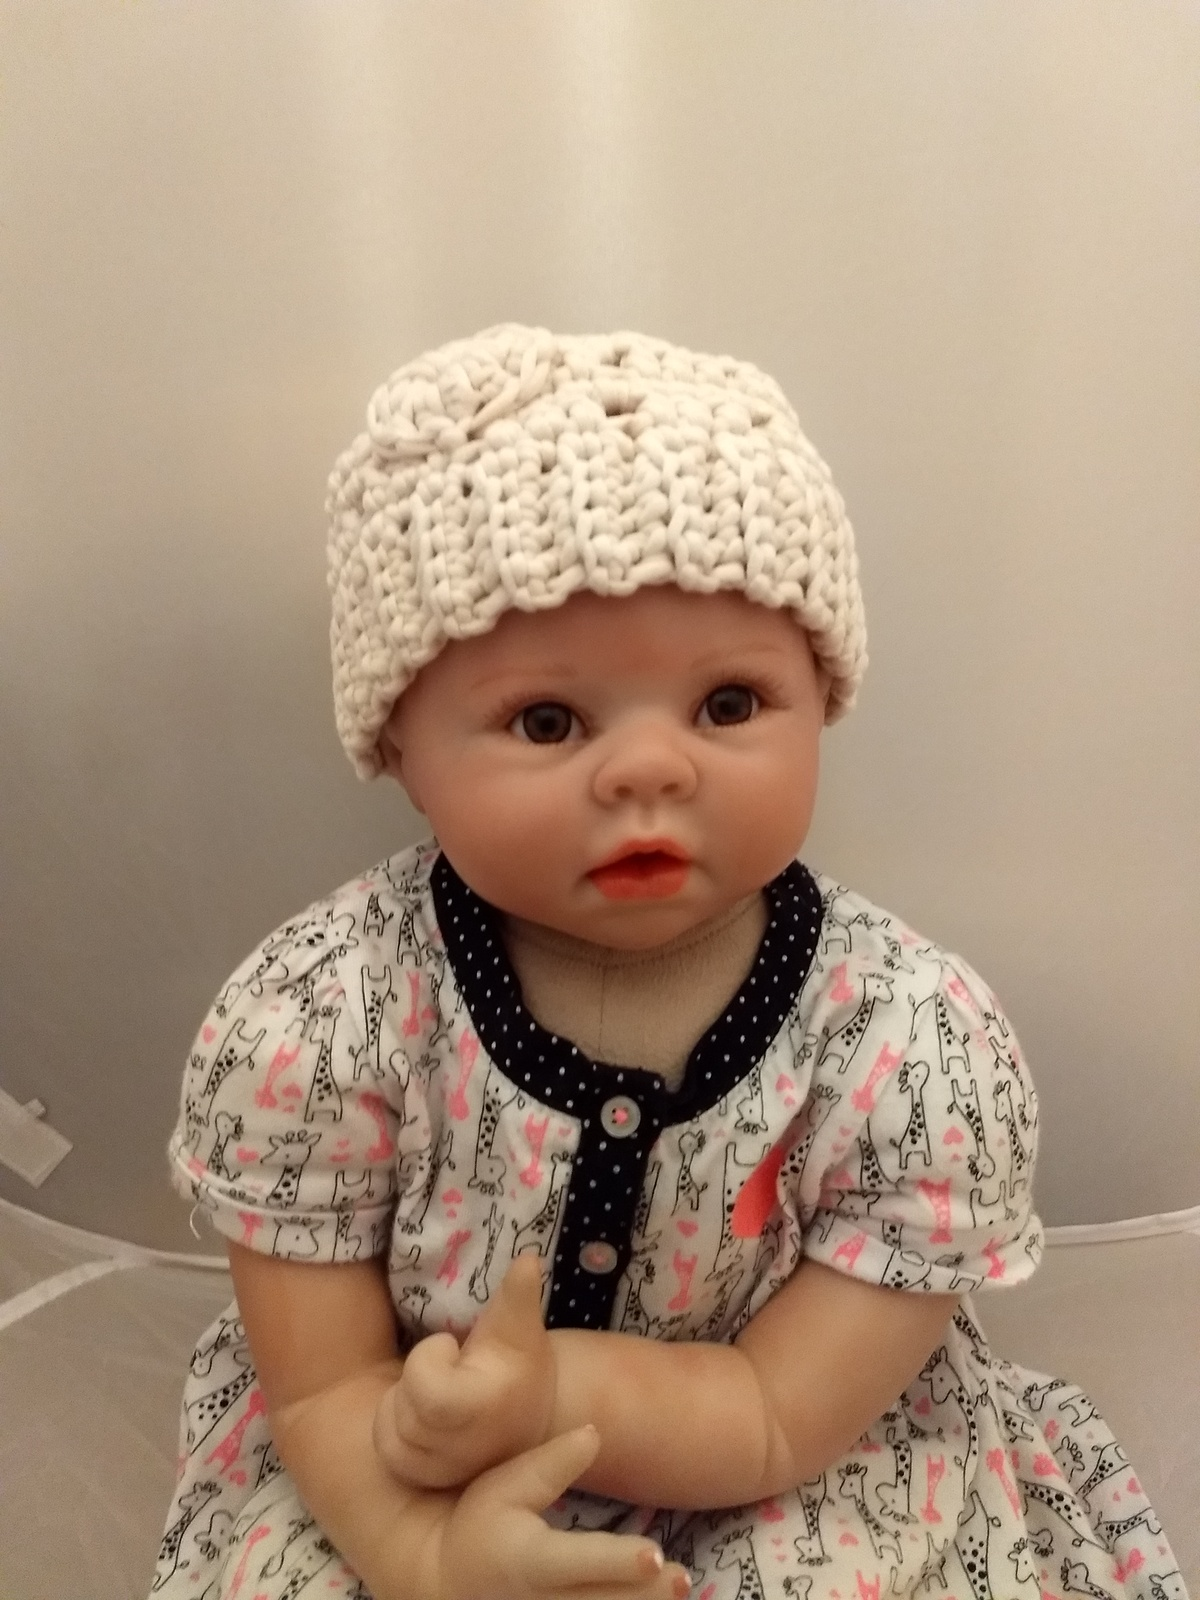 a6d1dc7cb30f4 Messy Bun Winter Hat for Baby or Toddler and similar items. Img 20180821  193252417